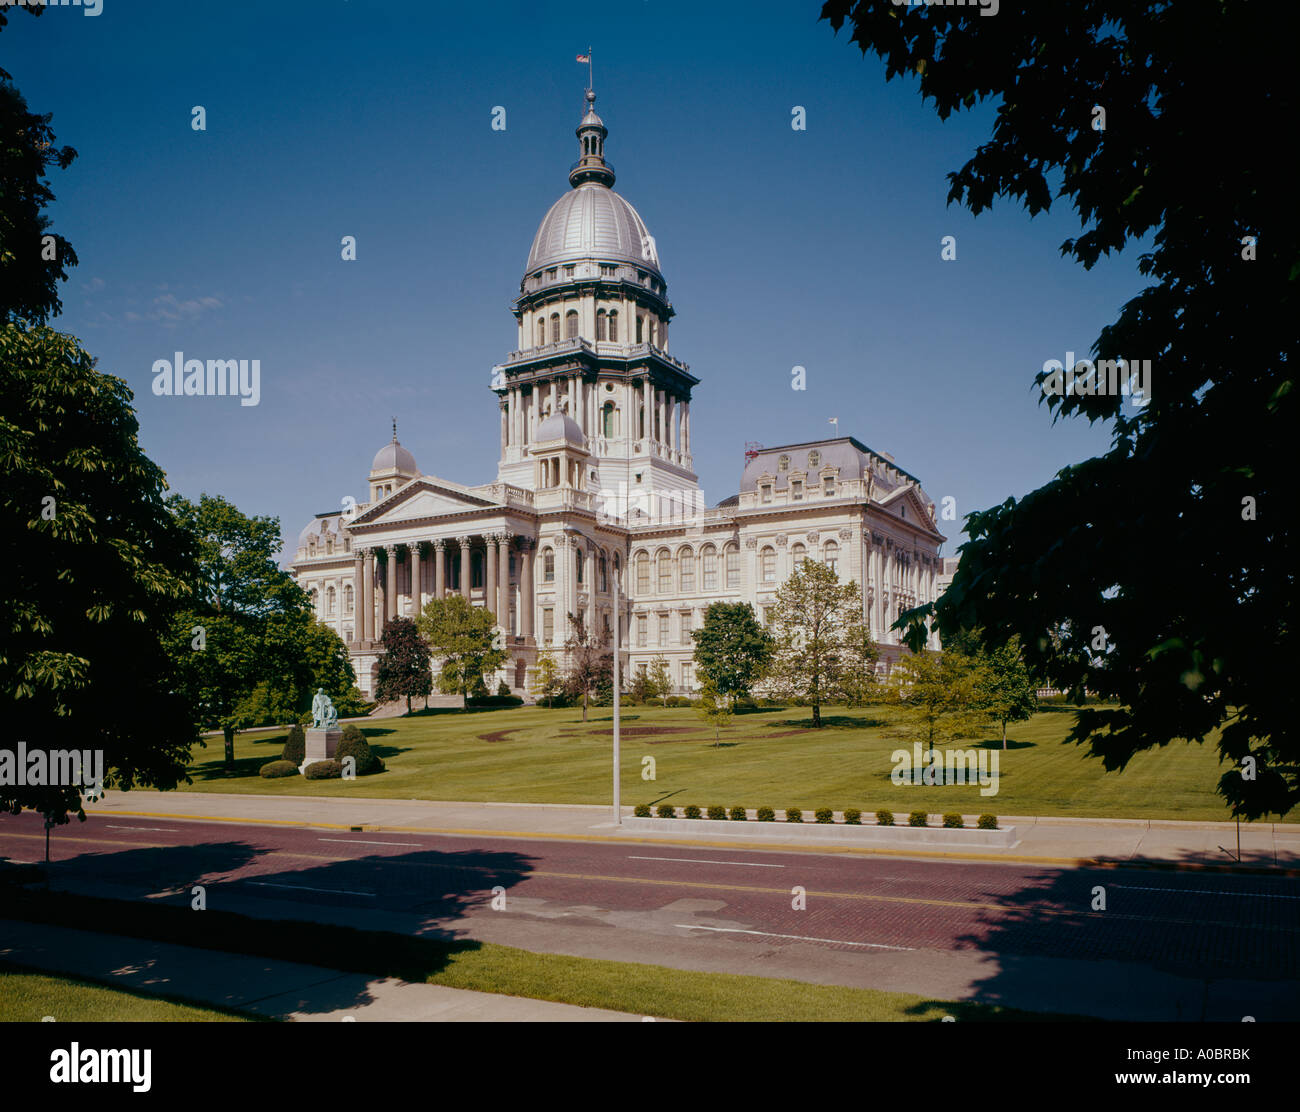 Illinois State Capitol Building at Springfield in Illinois - Stock Image